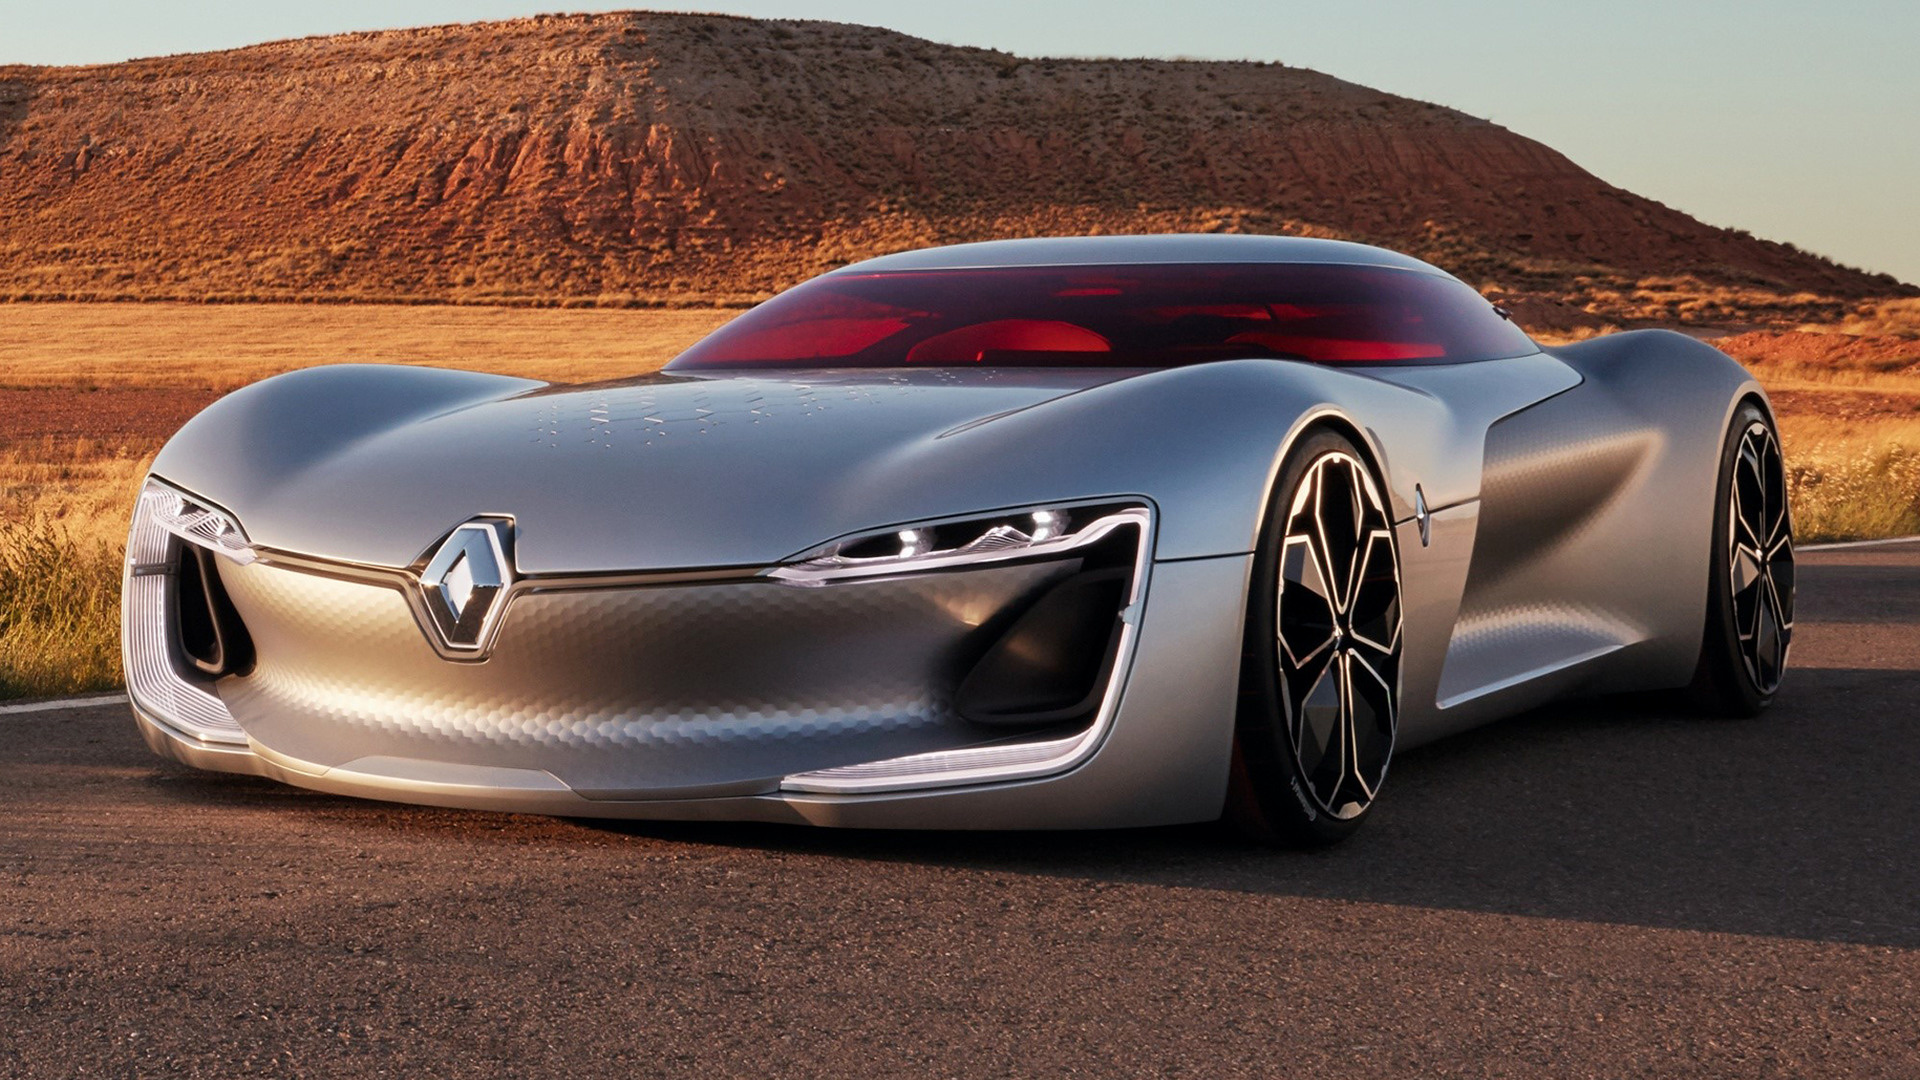 2016 Renault Trezor Concept Wallpapers And Hd Images